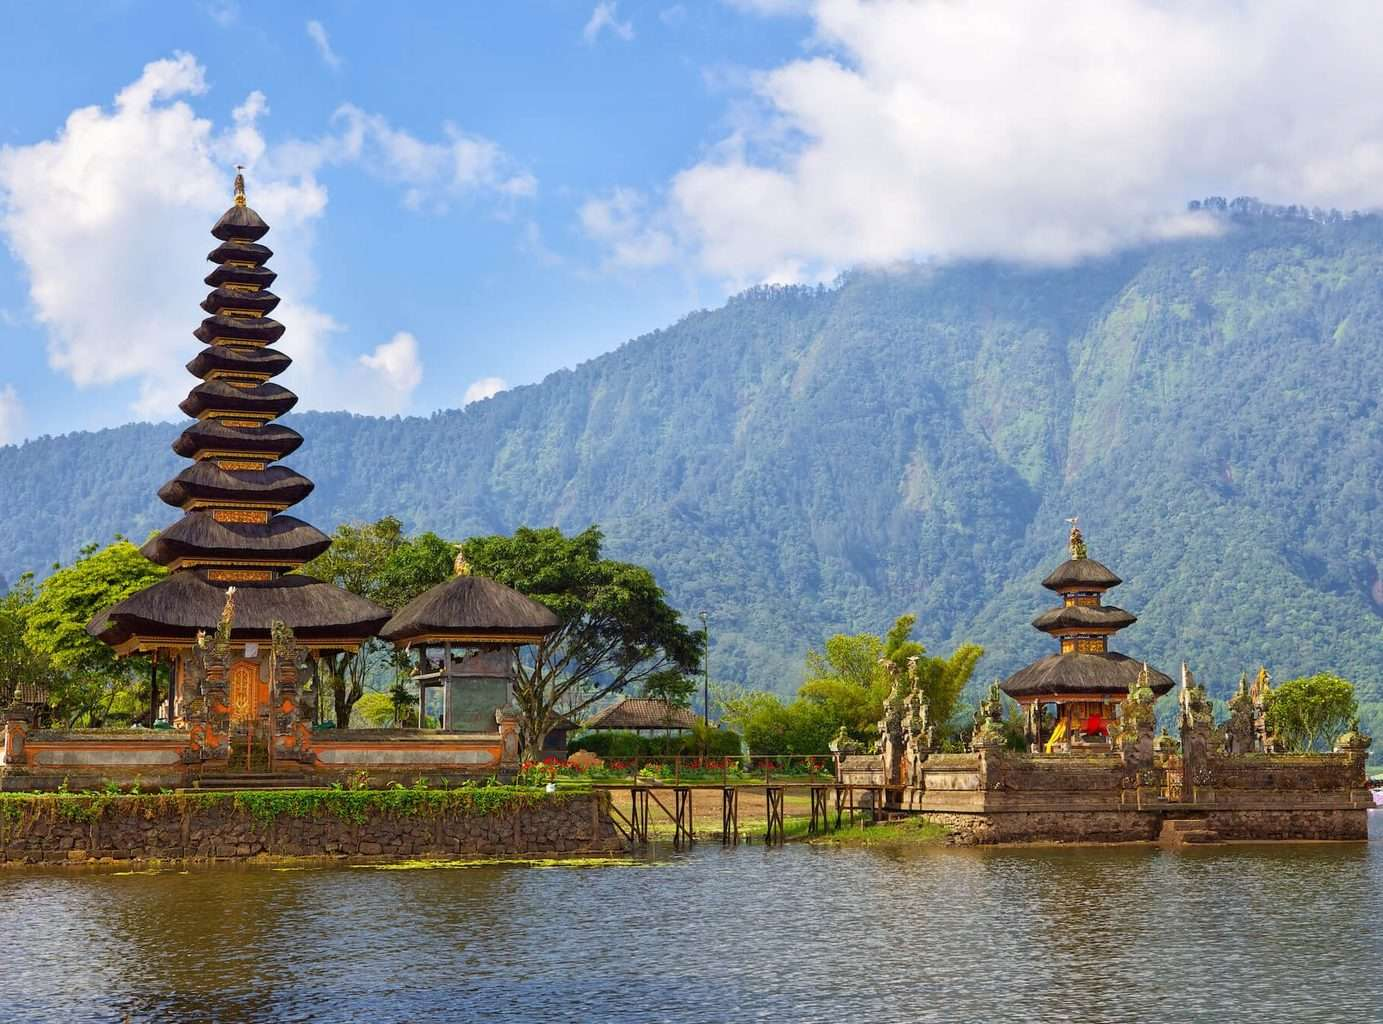 Luxury Bali Holidays - mountains, temple and water shot